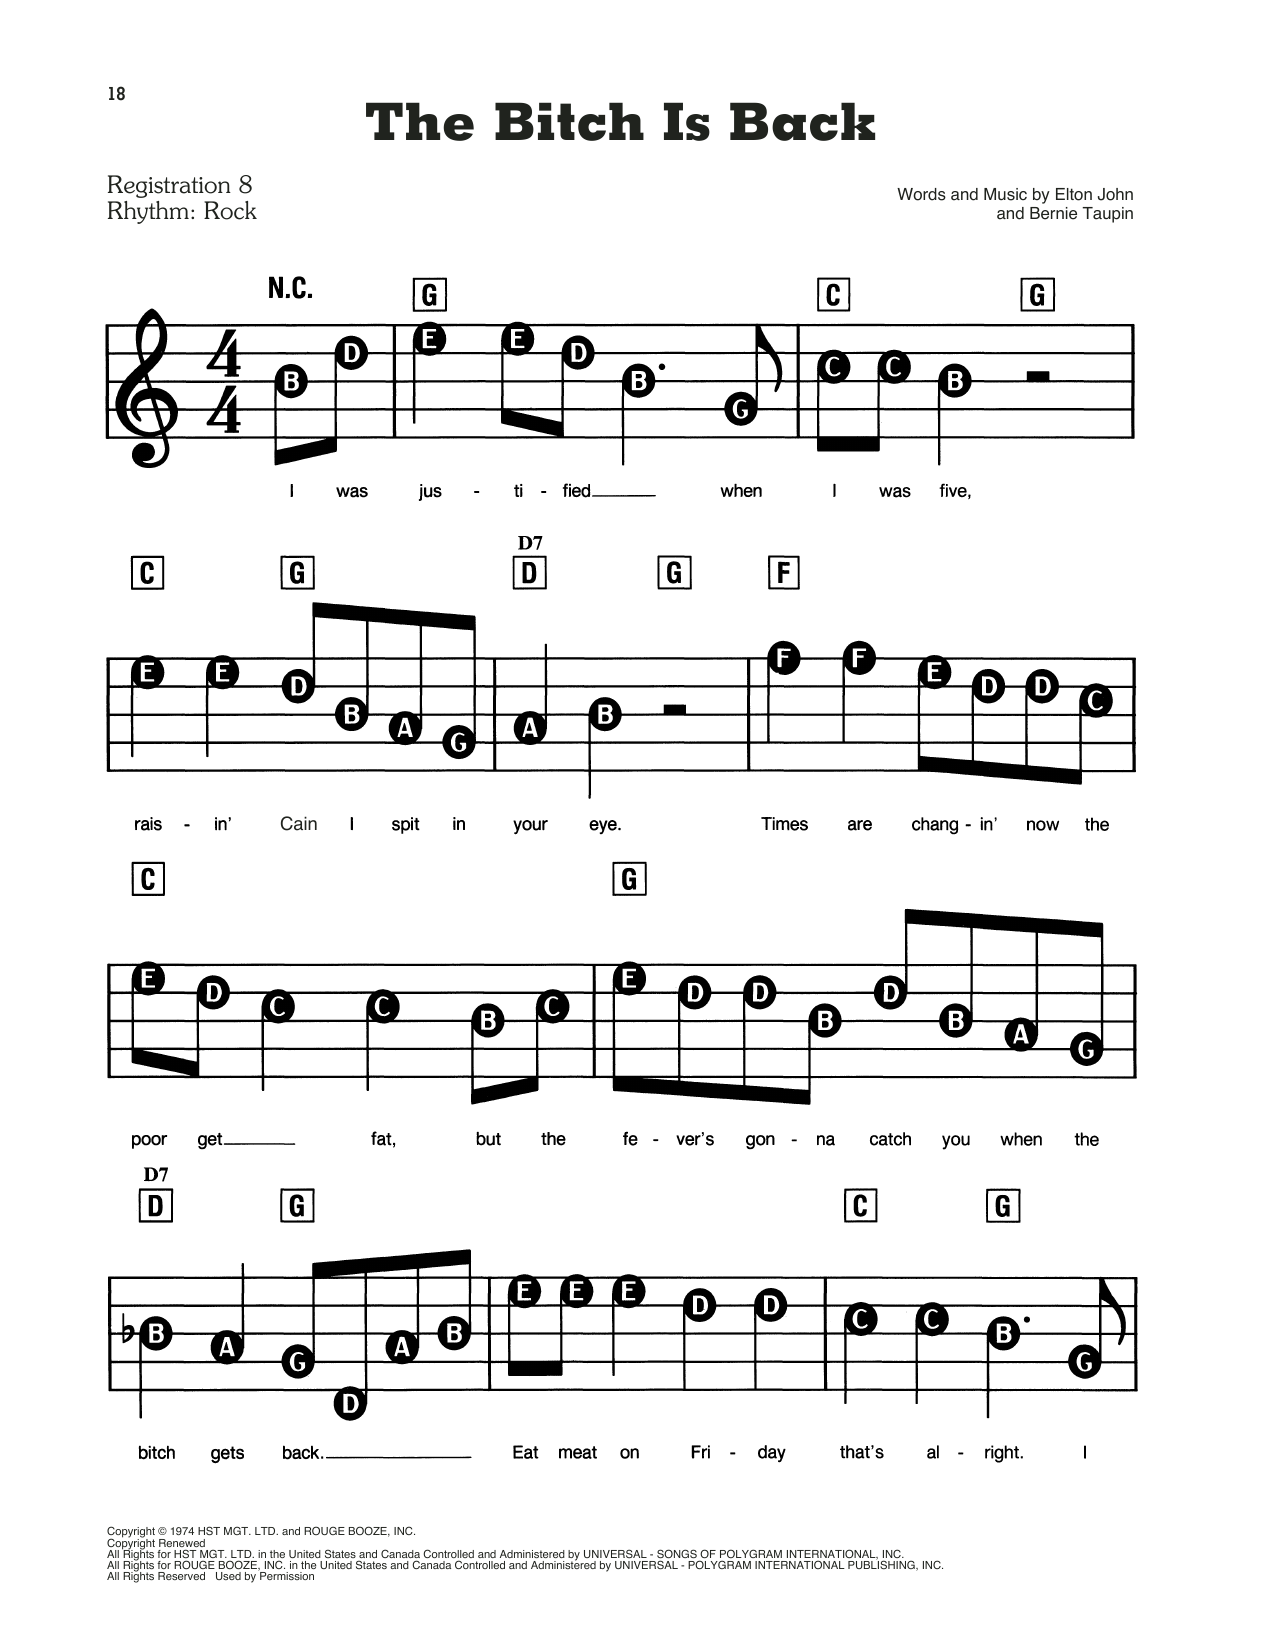 The Bitch Is Back Sheet Music